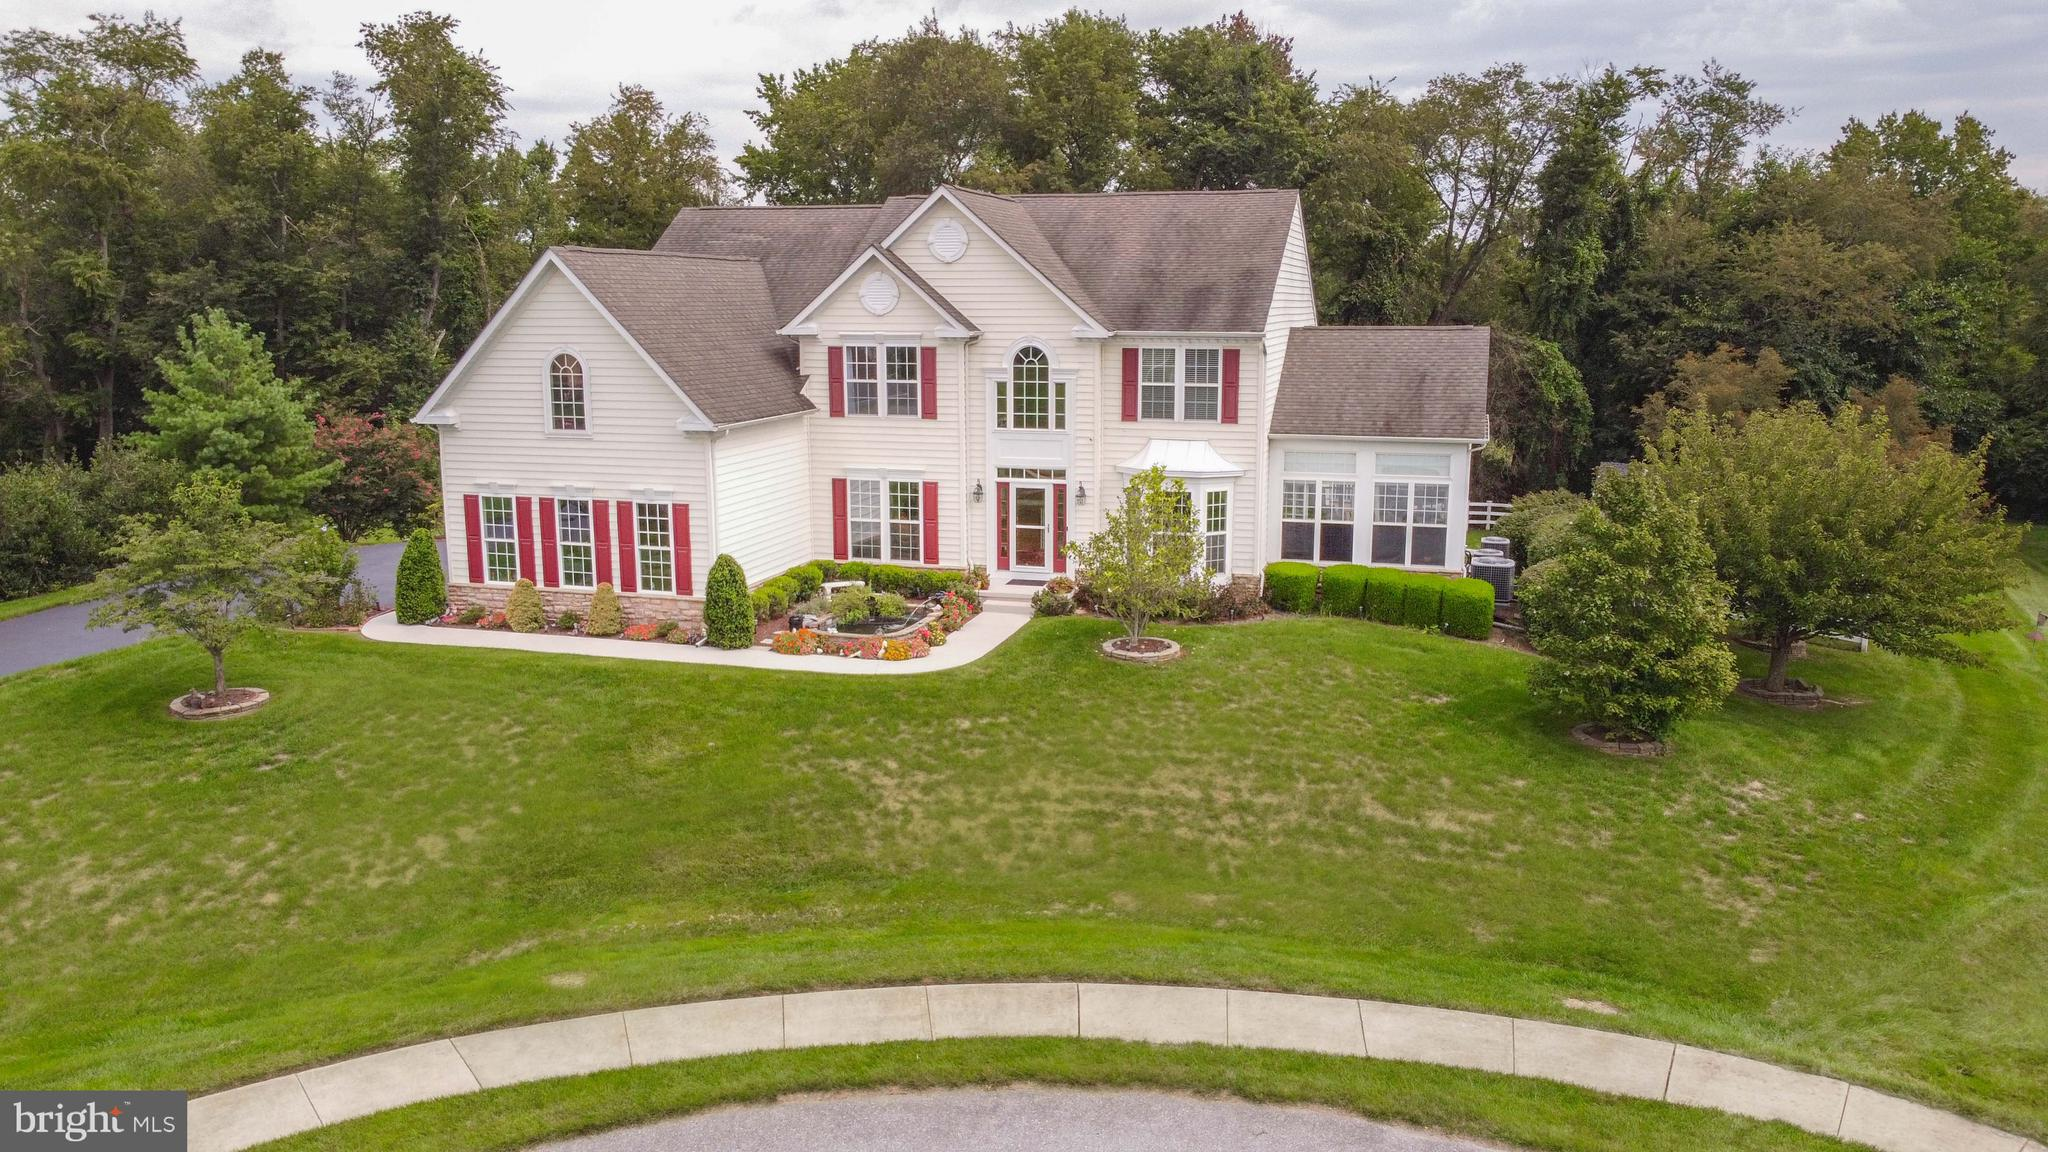 This gorgeous Estate Home is located at the end of a private cul-de-sac with a large .81 acre fenced lot that backs to woods for privacy.  Upon entry, you will be greeted with gleaming hardwood floors that extend through much of the main level, the butterfly staircase, and the 2nd-floor hallway.  The dramatic 2-story foyer is naturally luminous with a large transom window and an exquisite chandelier. The main floor also includes a formal Dining & Living Room that enters the sunshine-filled Solarium that is loaded with windows, a trey ceiling, and even includes its own HVAC zone. The Kitchen is a cook's paradise with a large island and ample counter space with a walk-in pantry, double wall oven, downdraft cooktop, above counter microwave (new 2021), cherry cabinets, and a great breakfast bar that opens to the Morning Room w/vaulted ceilings and many more windows. There is a large laundry/mudroom with a laundry tub and storage. The Kitchen also opens to the spacious Family Room, loaded with windows, and a gas fireplace that flows to the Sunroom. There is also a Study/5th Bedroom and full bathroom. The 2nd floor includes 2 large bedrooms adjoined by a Jack & Jill bathroom, an additional bedroom with a private full bathroom, and a large Owners Suite with a sitting room, walk-in closet, vaulted ceiling, and a recently updated bathroom with a soaking tub and a separate shower with glass doors. Don't miss the massive 47' x 20' Trex deck that includes a huge ramp on one end and steps on the other side that go down to the private rear yard and French Doors to the unfinished basement.  The basement could easily be finished to enjoy the additional 2,400 sqft. The seller has already spent the money on the 4-piece plumbing for a future full bathroom.